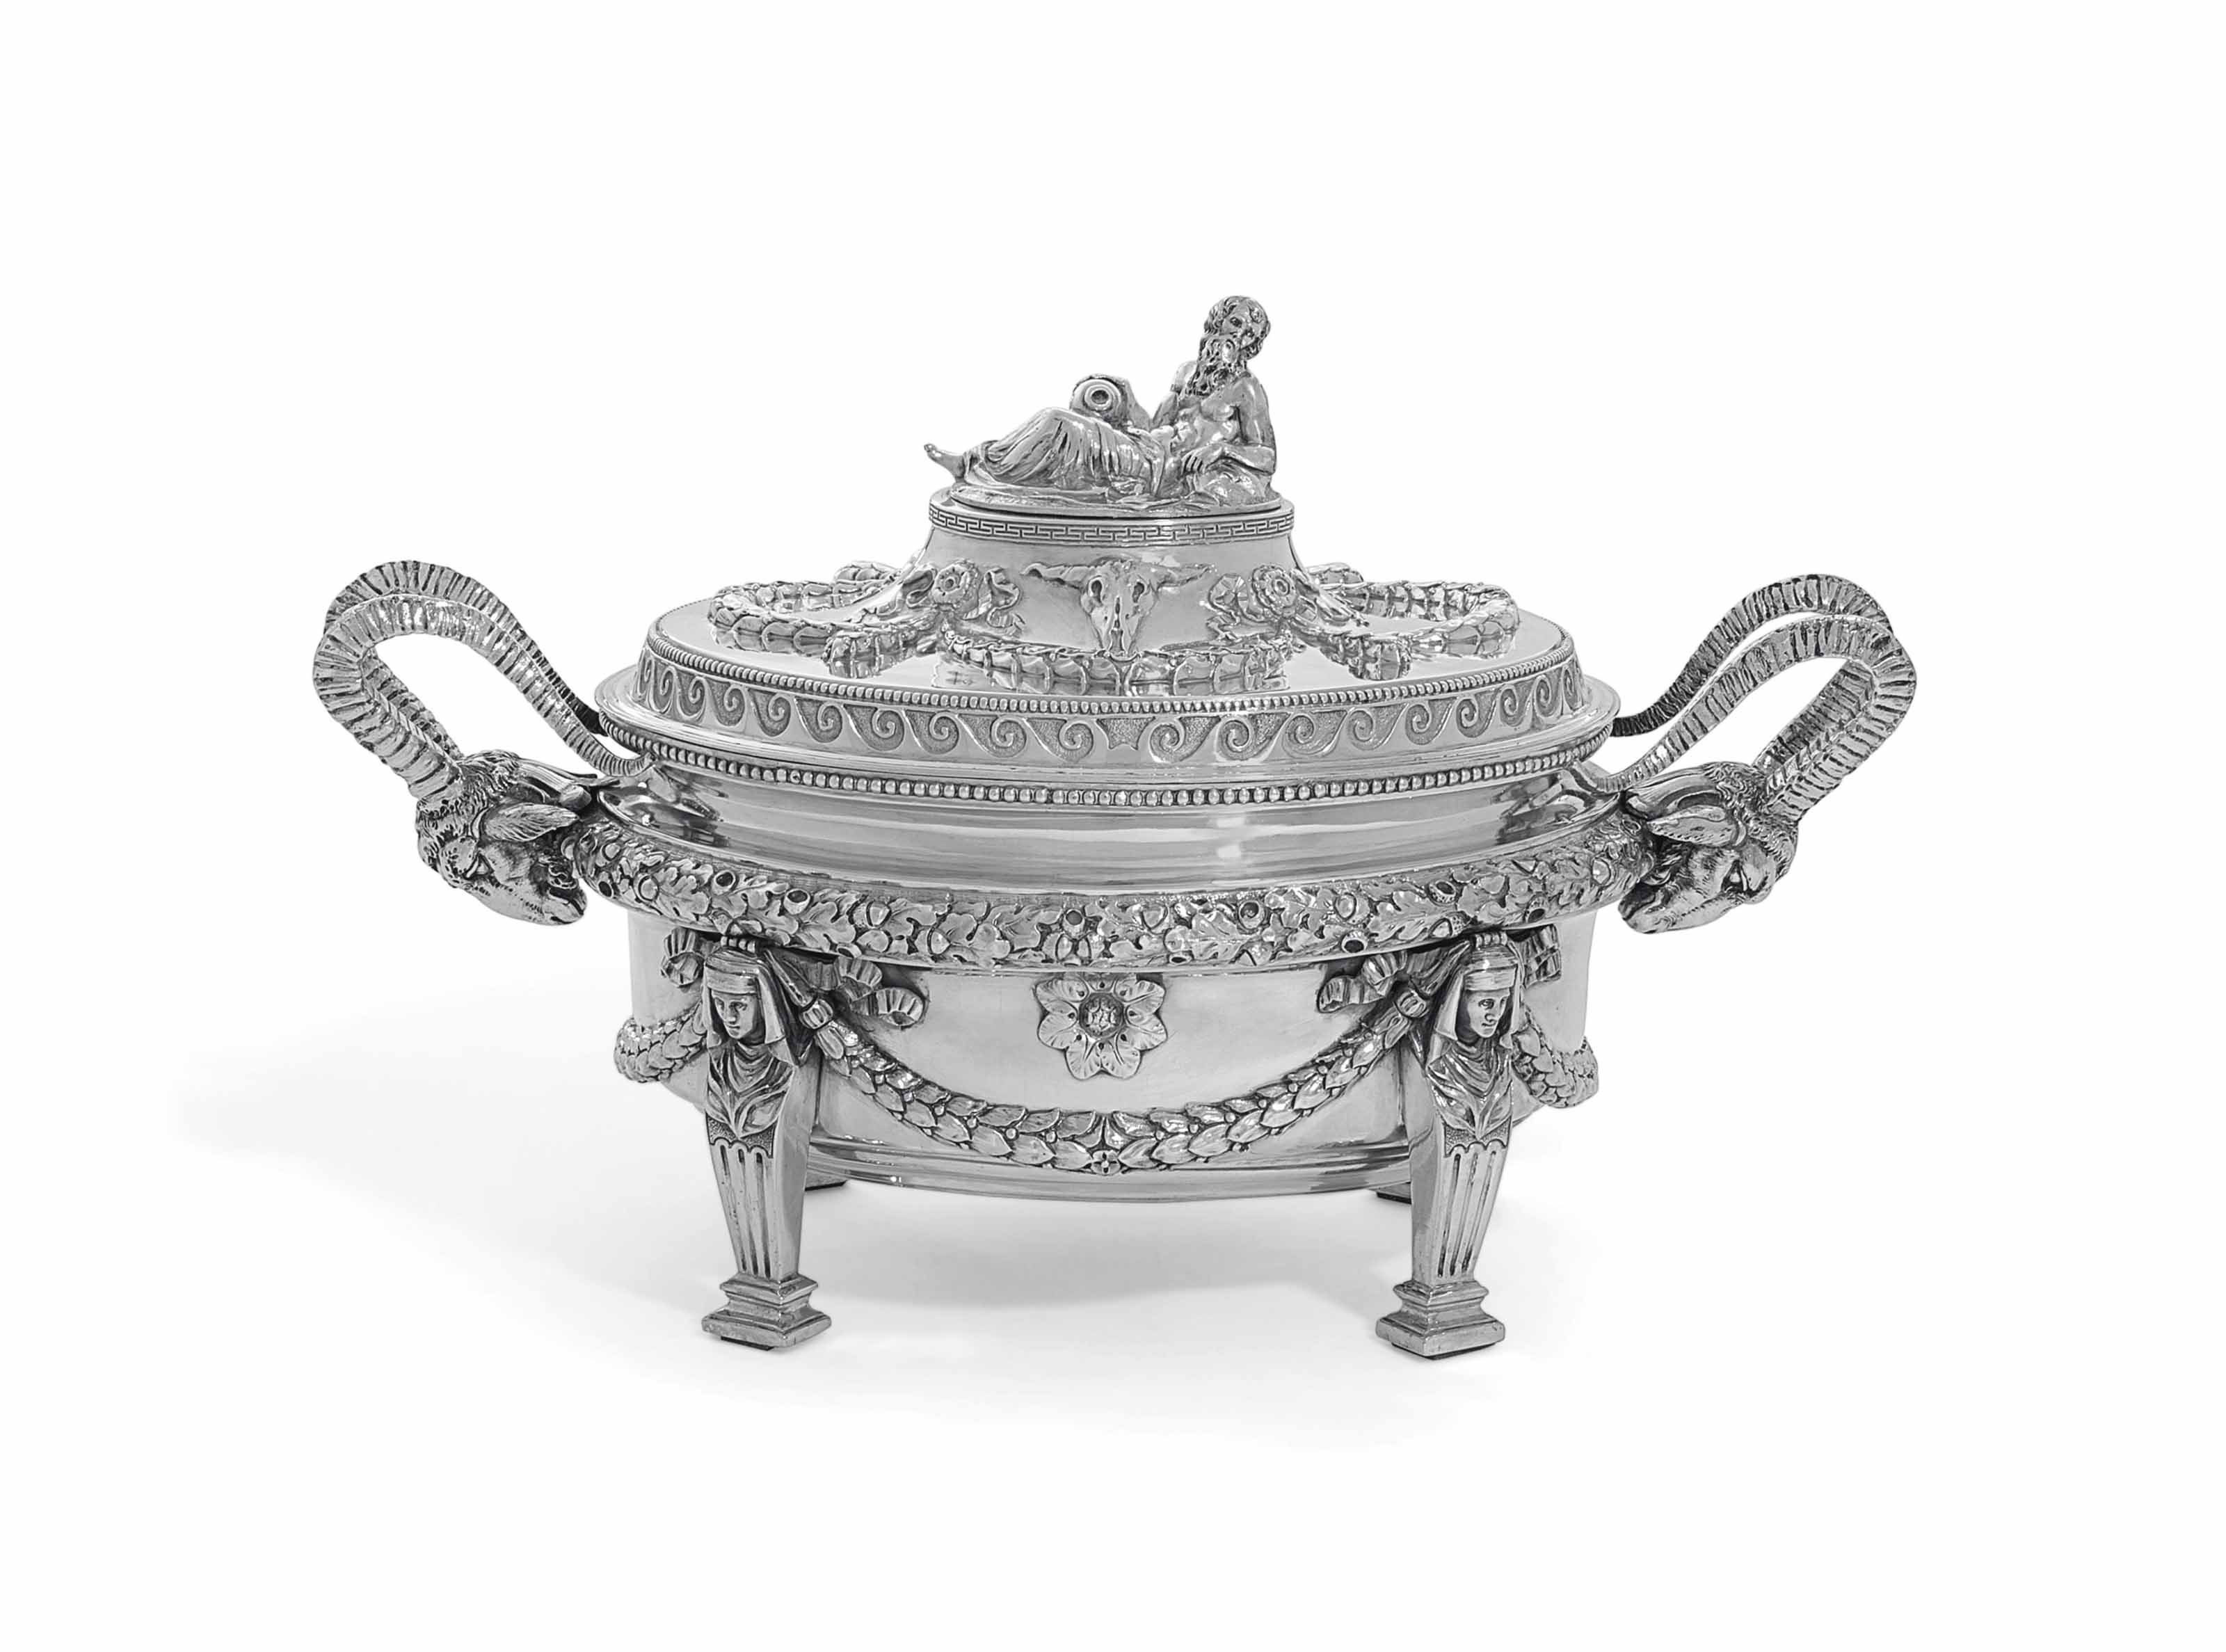 AN ITALIAN SOUP-TUREEN AND COVER